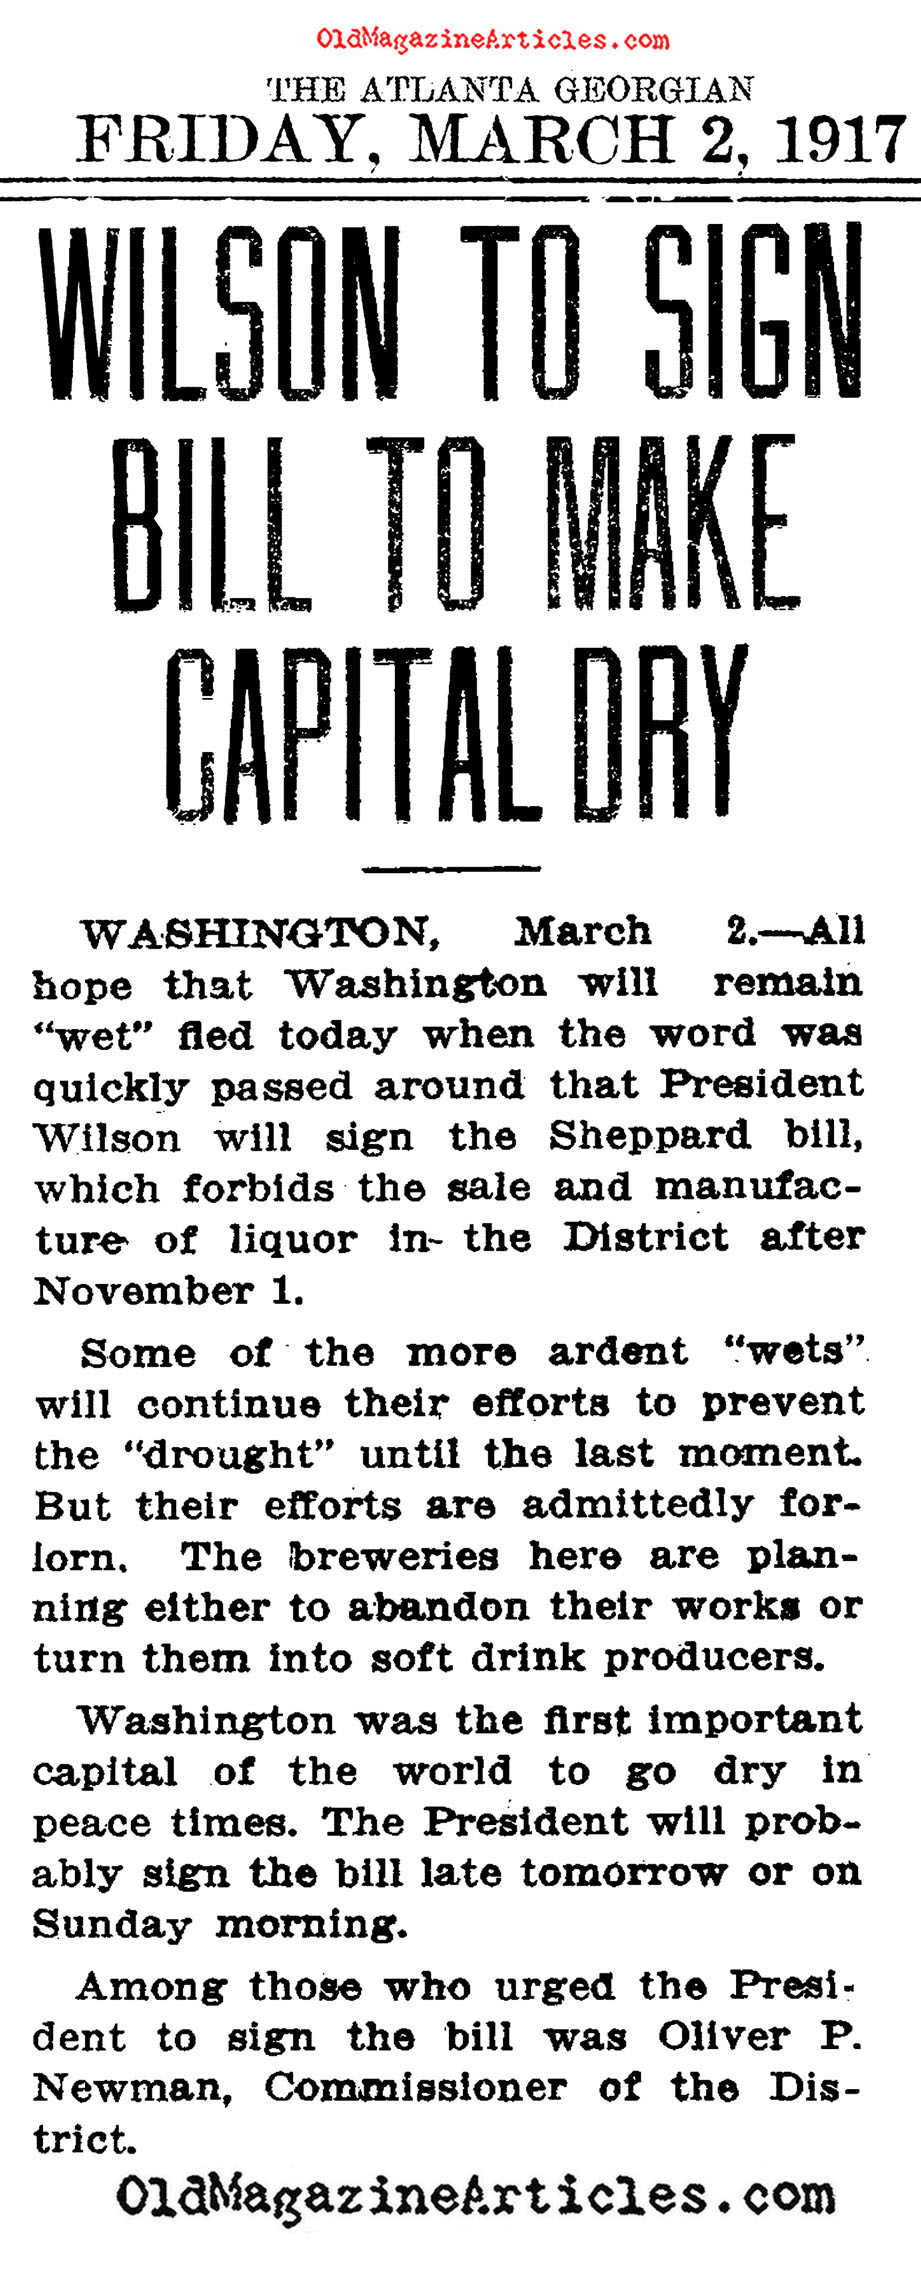 Prohibition Comes to Washington, D.C. (The Atlanta Georgian, 1917)